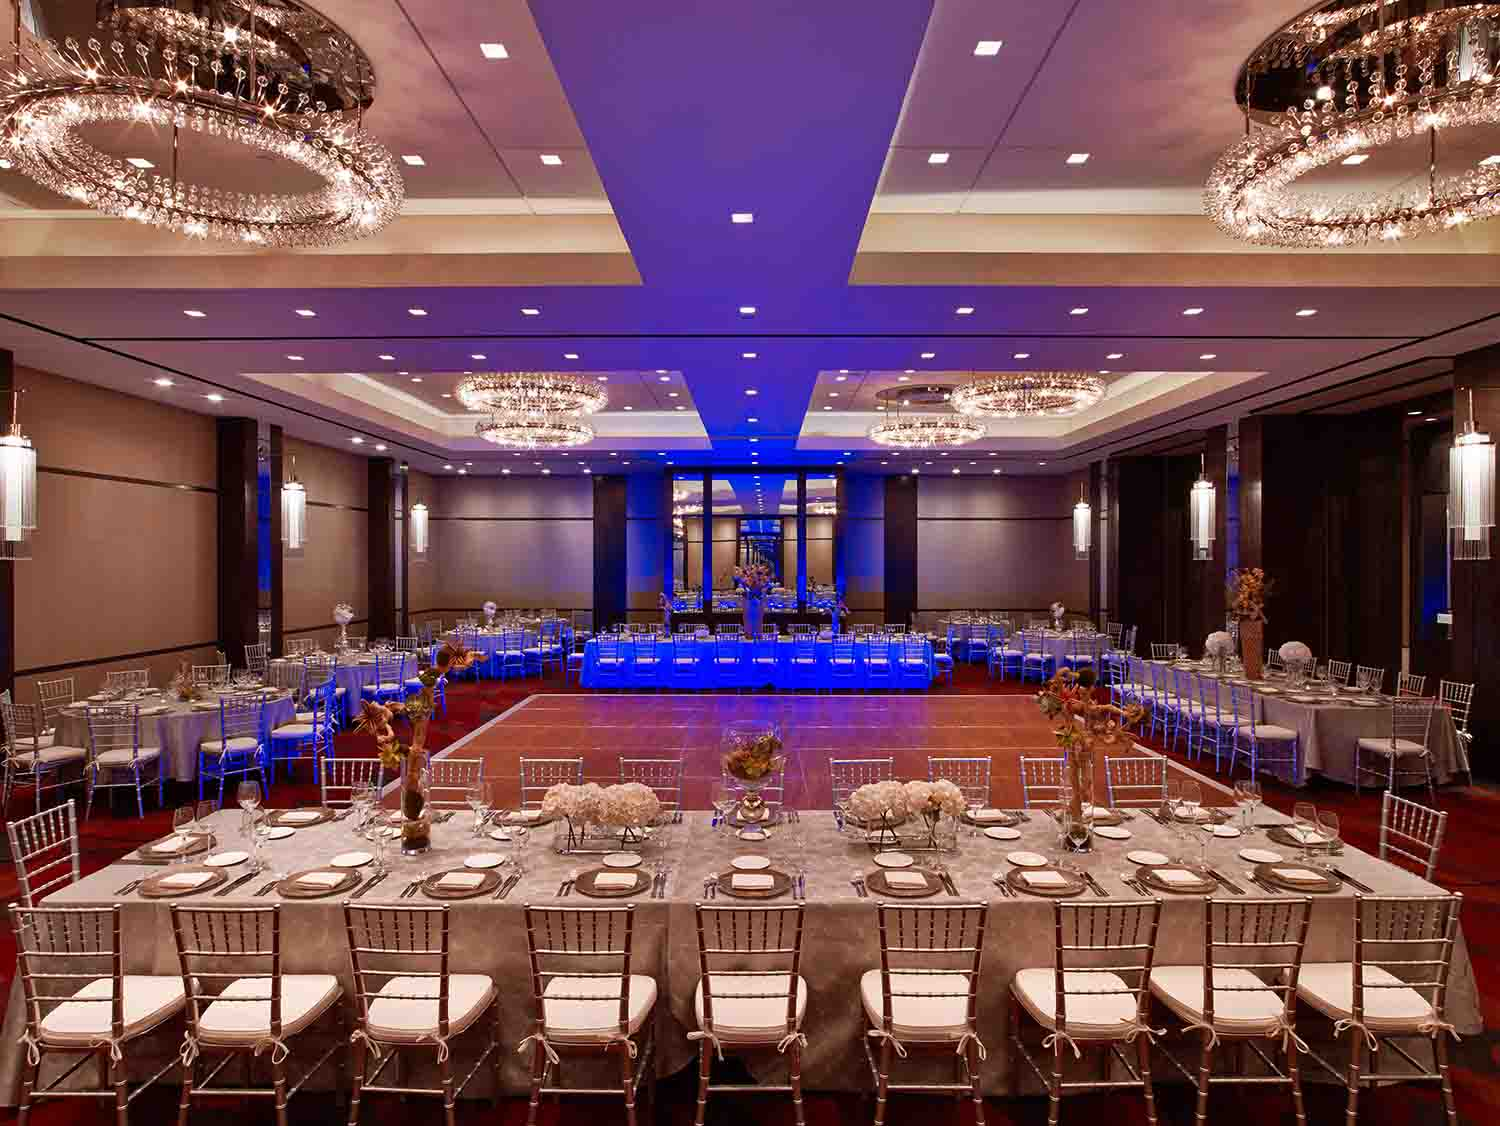 dallas meeting planning Looking for a event planner in the dallas, tx area gigmasters will help you choose the best local event vendors start here.